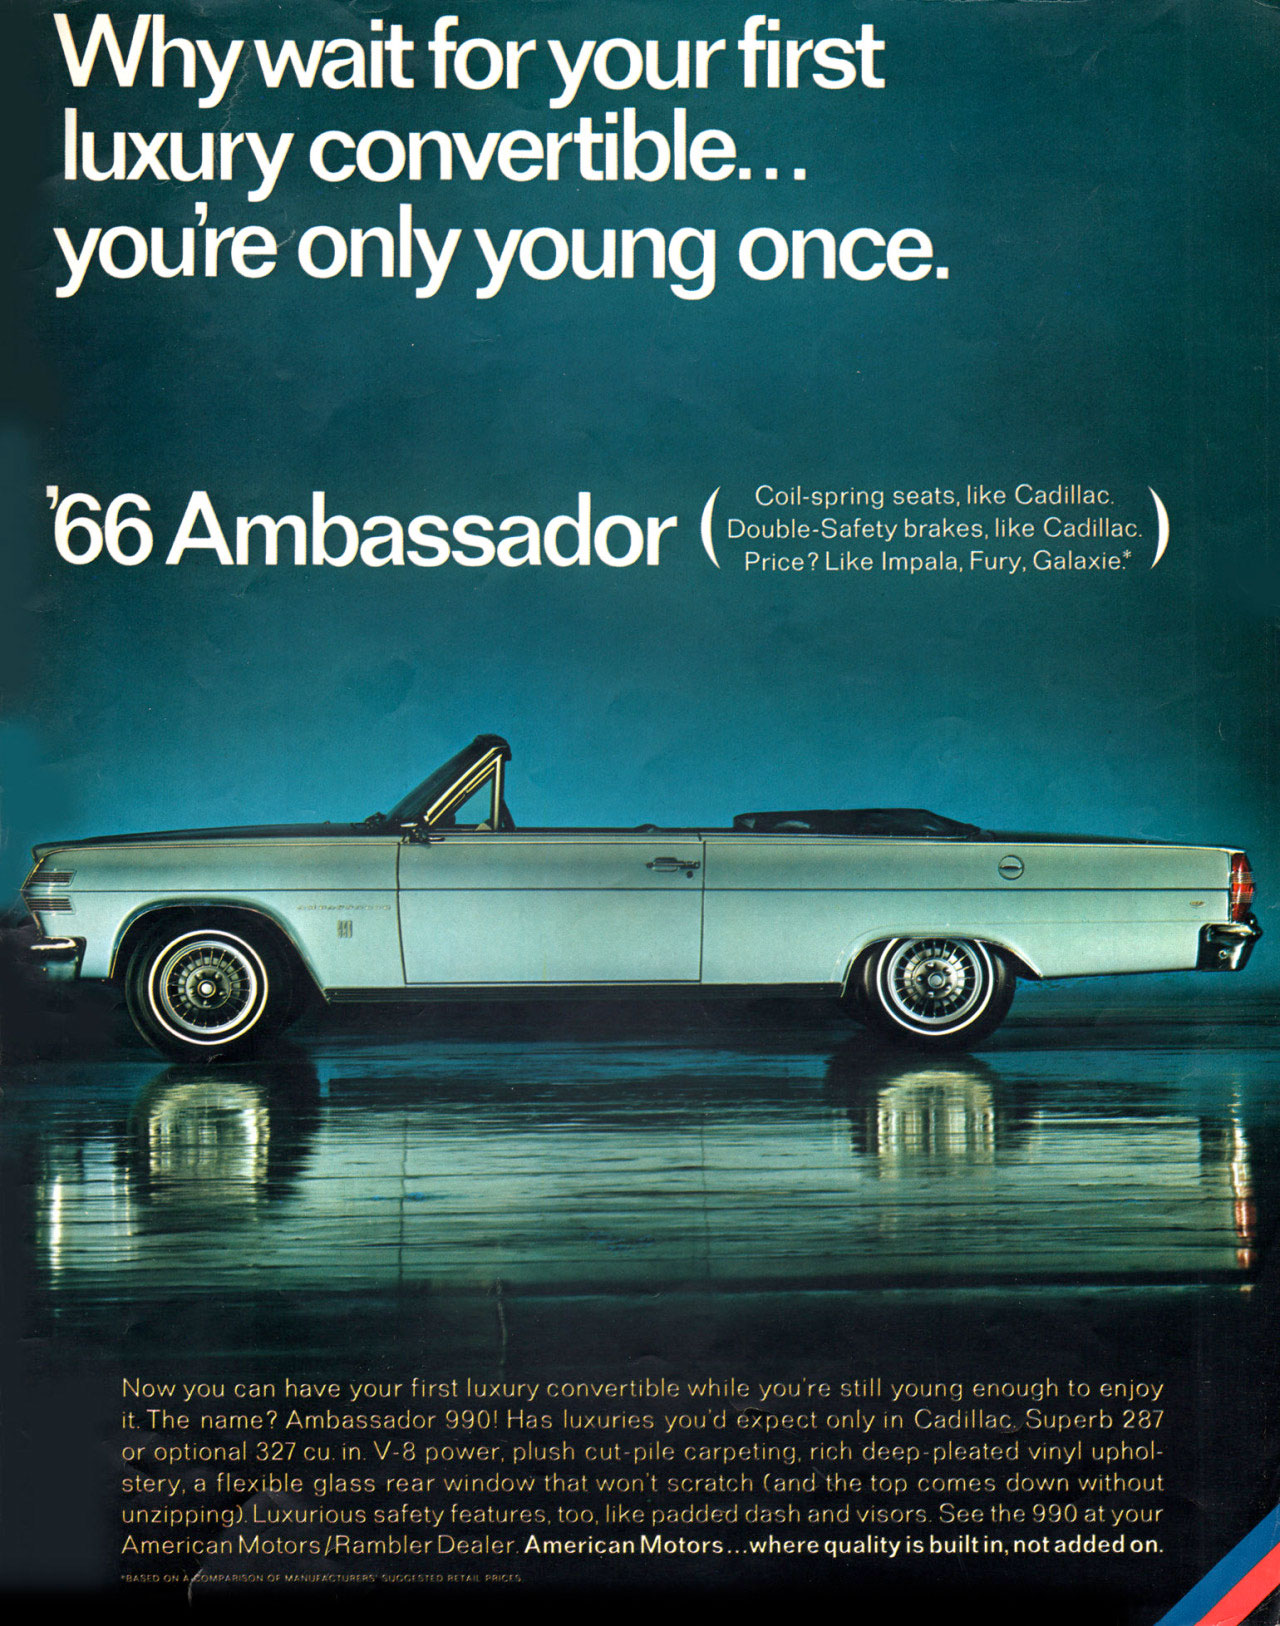 Why wait for your first luxury convertible... you're only young once. The 1966 AMC Ambassador. (Coil-spring seats, like Cadillac. Double-Safety brakes, like Cadillac. Price? Like Impala, Fury, Galaxie:'  Now you can have your first luxury convertible while you're still young enough to enjoy it. The name? Ambassador 990! Has luxuries you'd expect only in Cadillac. Superb 287 or optional 327 cu. in. V-8 power, plush cut-pile carpeting, rich deep-pleated vinyl uphol-stery, a flexible glass rear window that won't scratch (and the top comes down without unzipping). Luxurious safety features, too, like padded dash and visors. See the 990 at your American Motors/Rambler Dealer American Motors...where quality is built in, not added on.